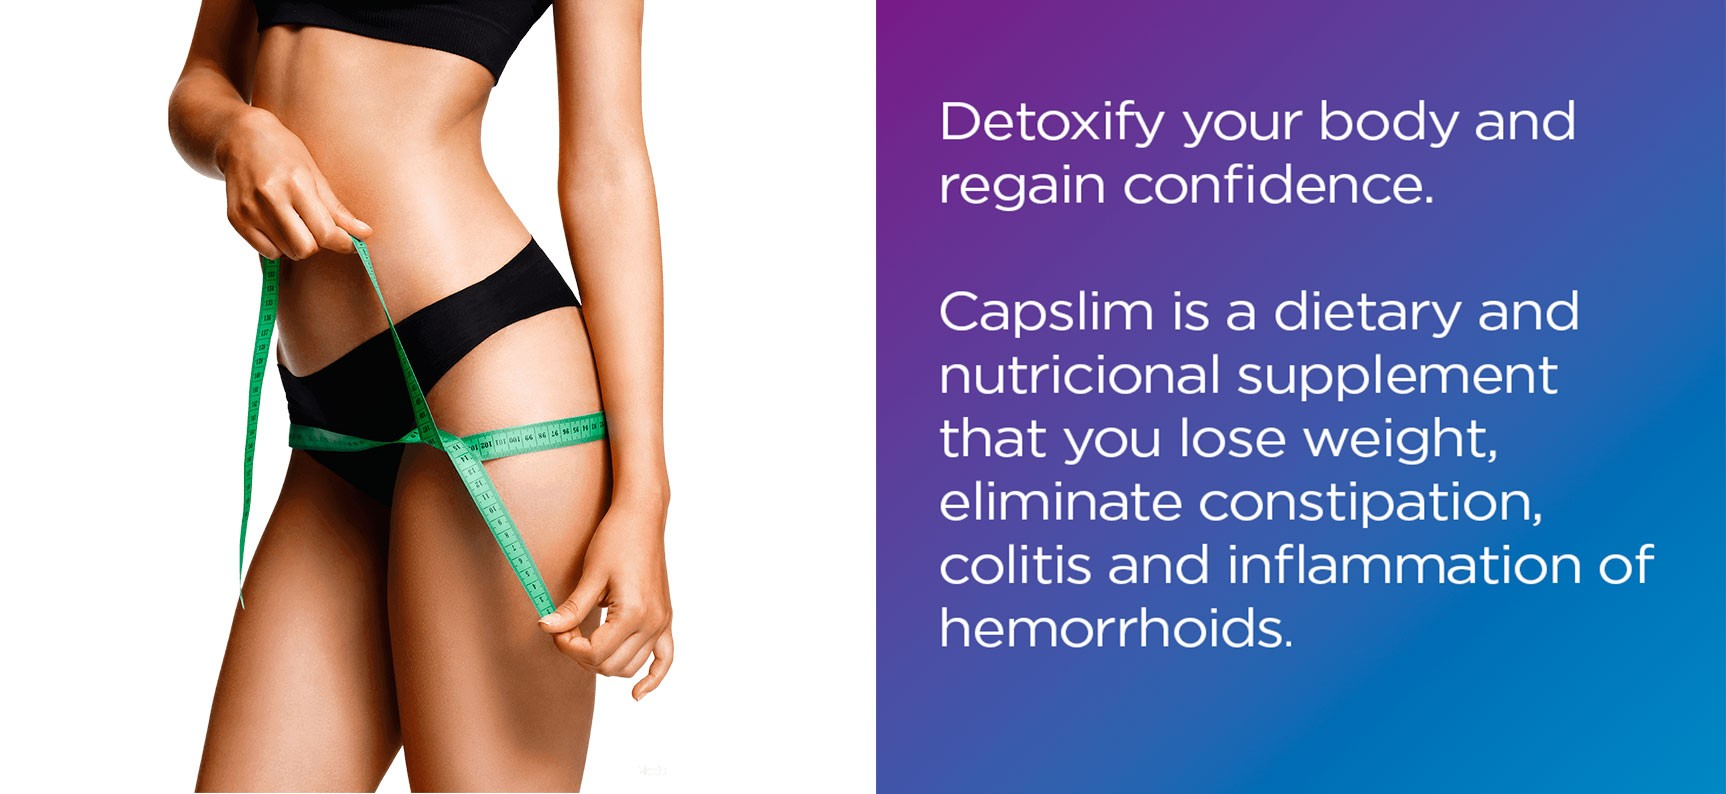 Detoxify your body and regain confidence.